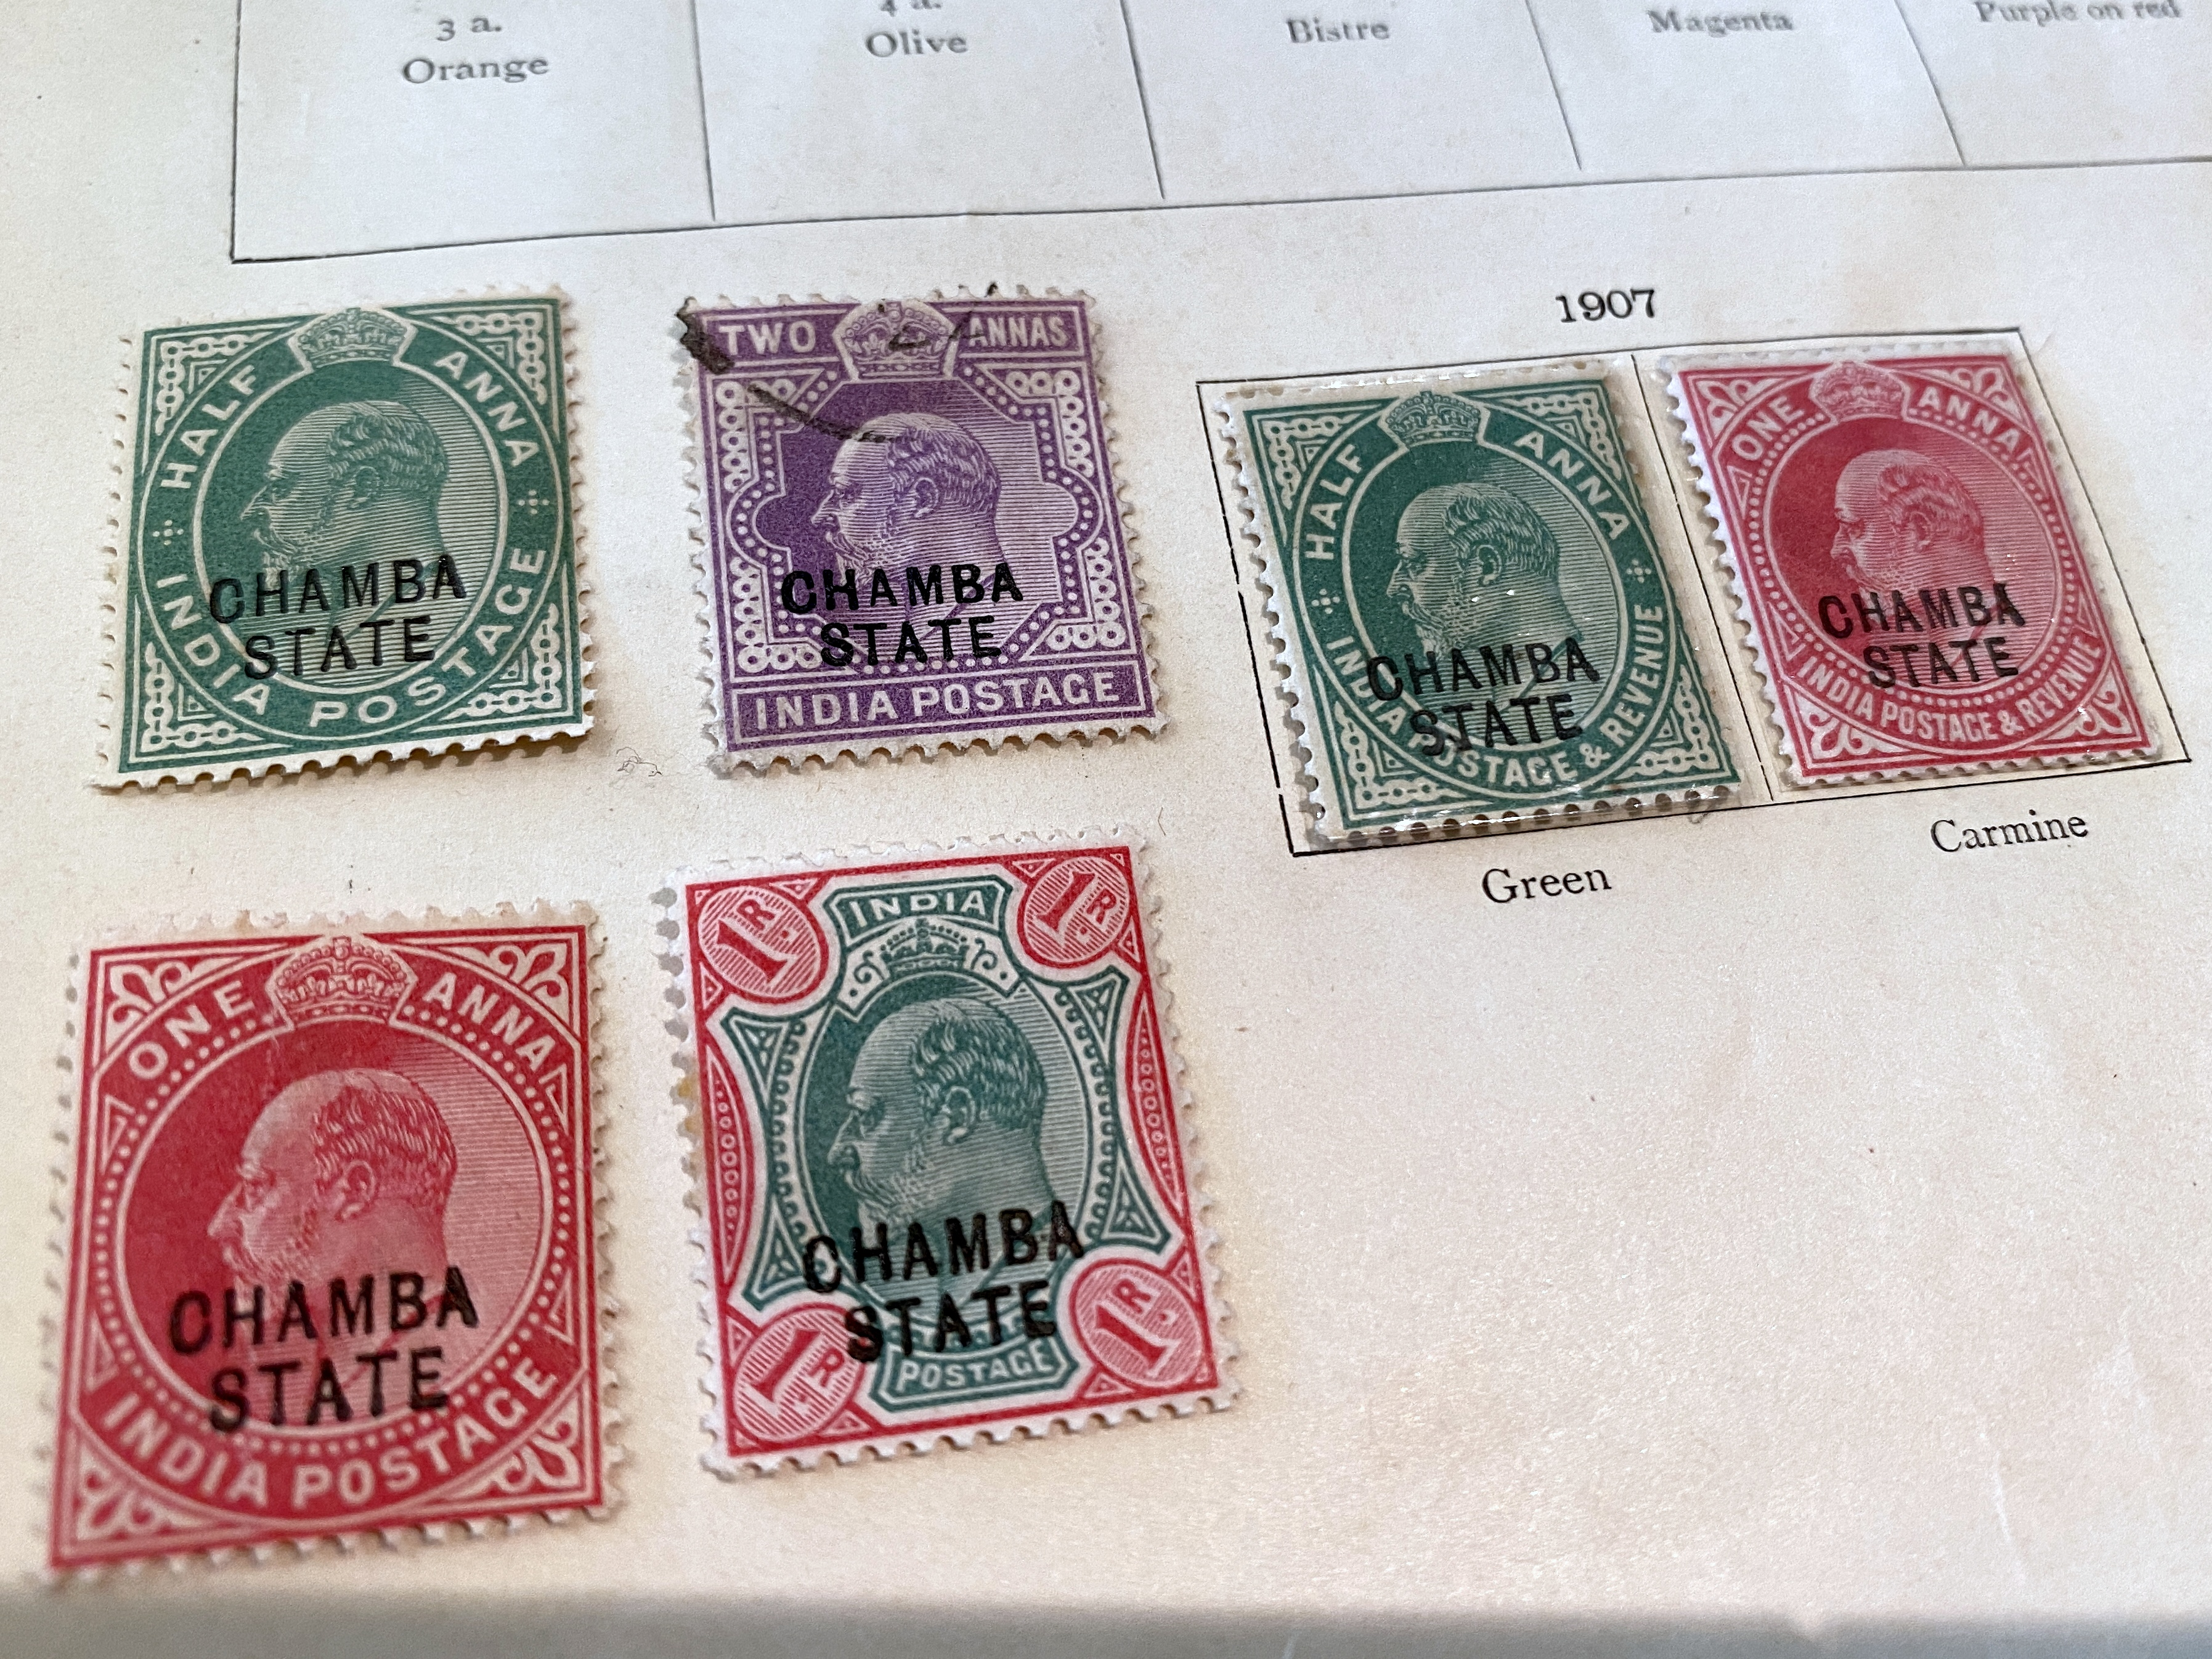 Assorted colors postage stamps Chamba State India